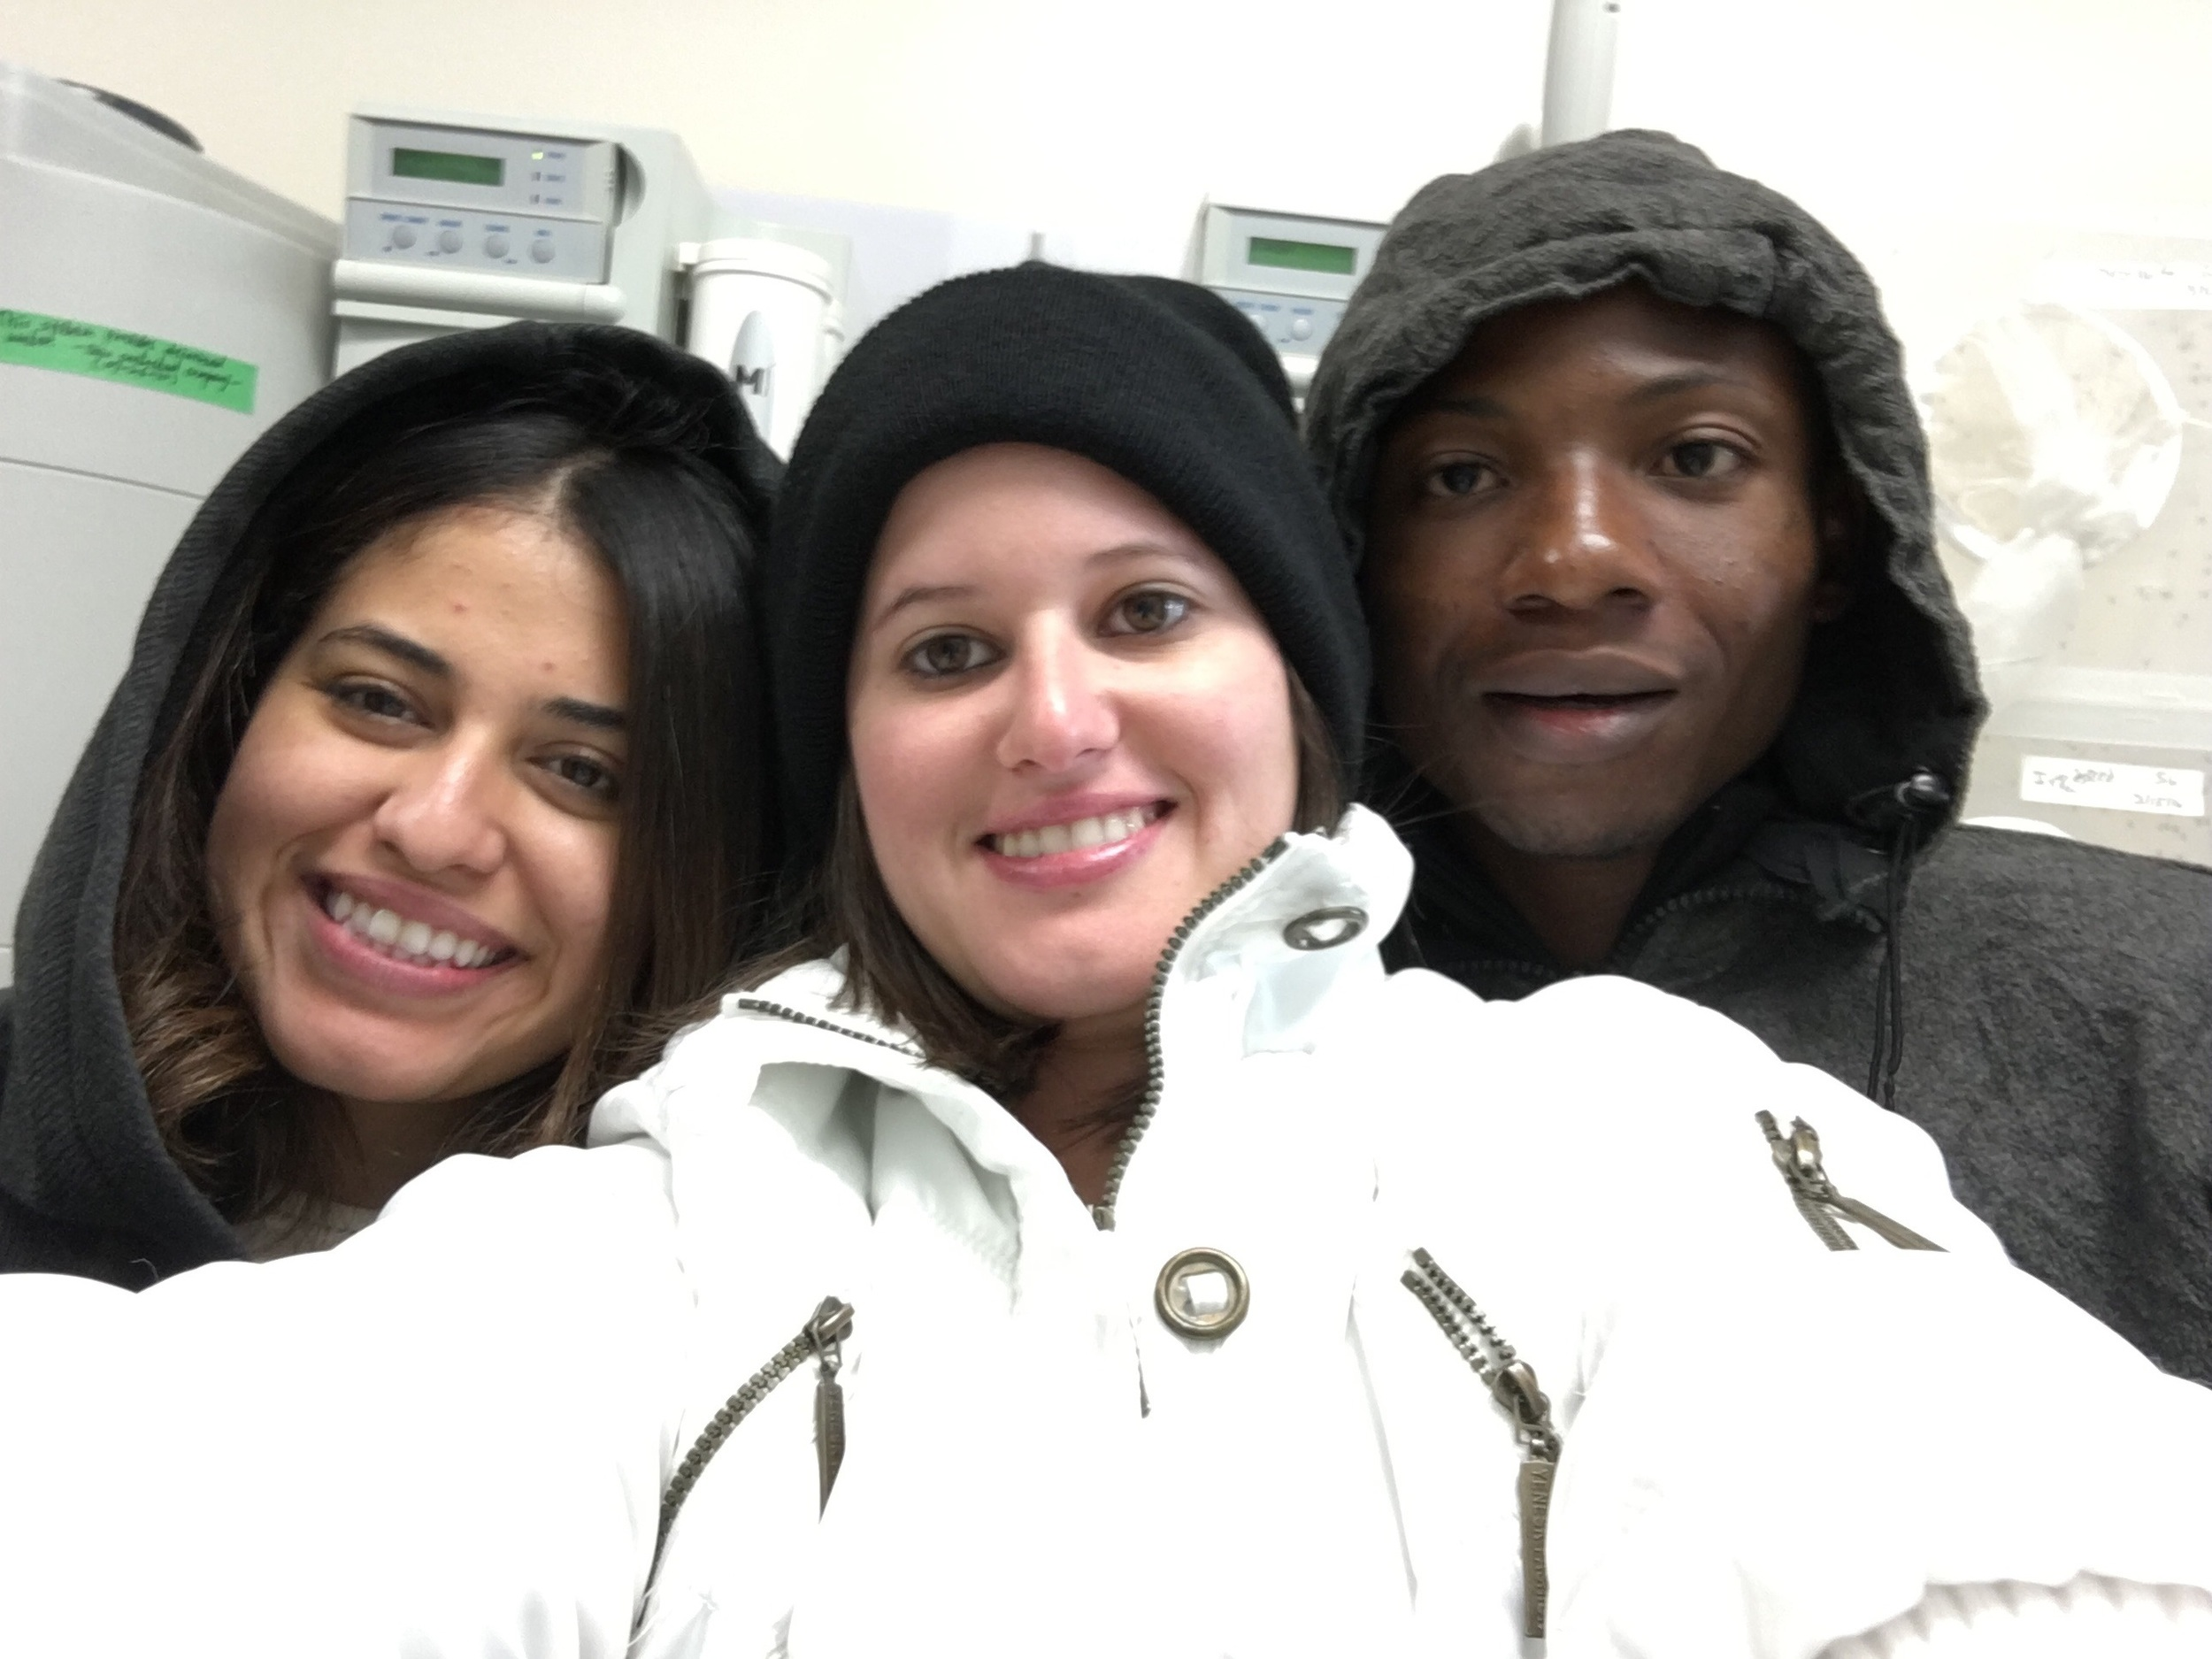 Valeria, Sheyla, and Joshua suit up for some chilly conditions